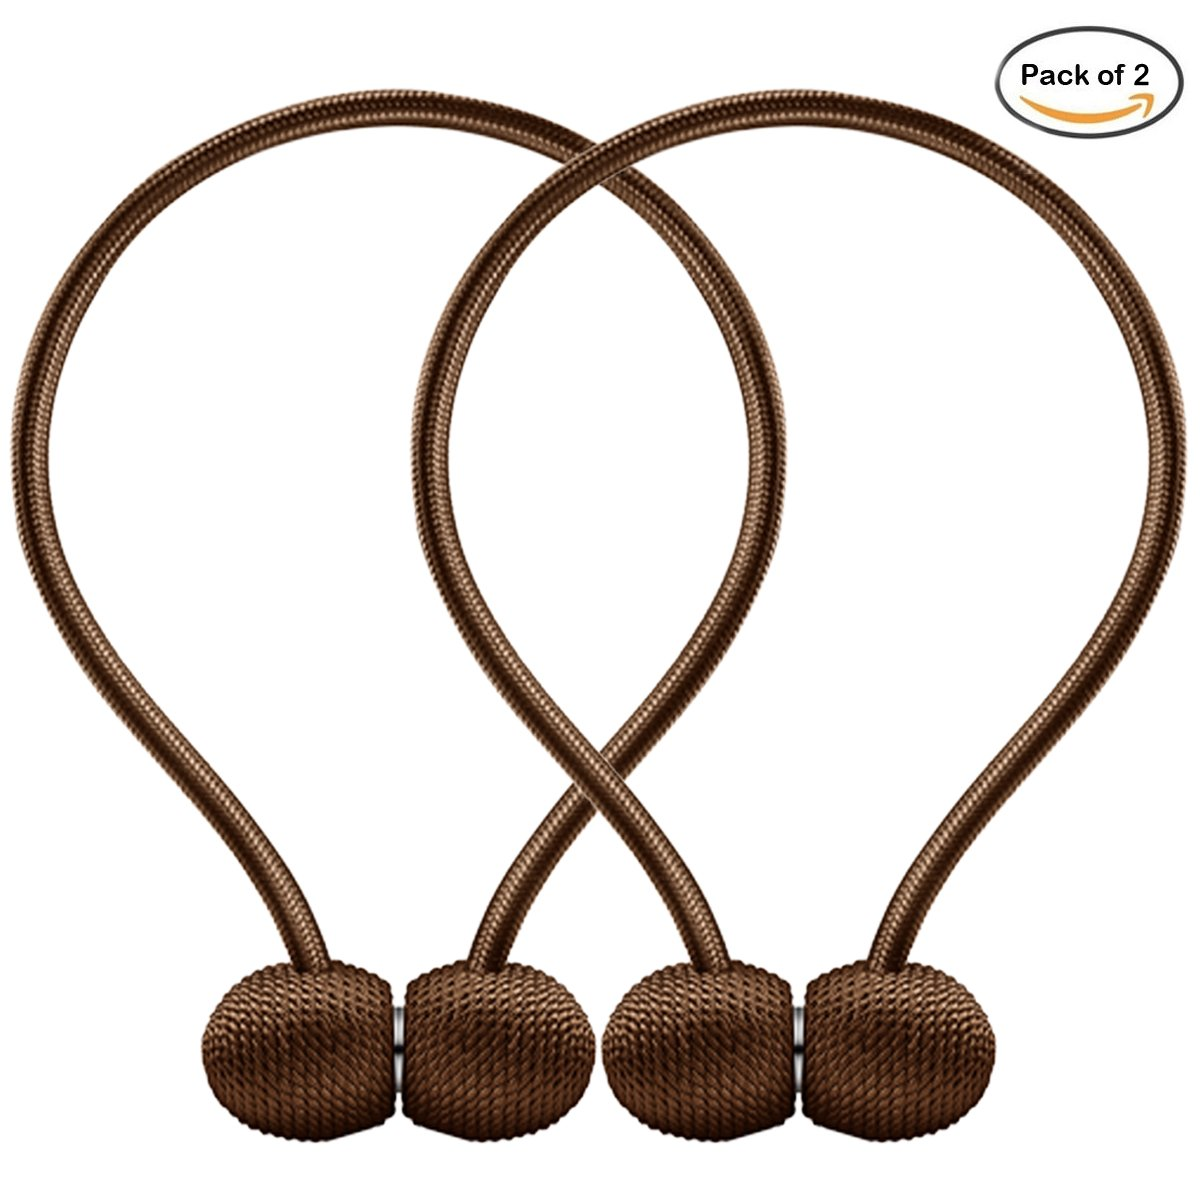 IHC Window Curtain Tiebacks Clips VS Strong Magnetic Tie Band Home Office Decorative Drapes Weave Holdbacks Holders European Style 1 pair (Brown)